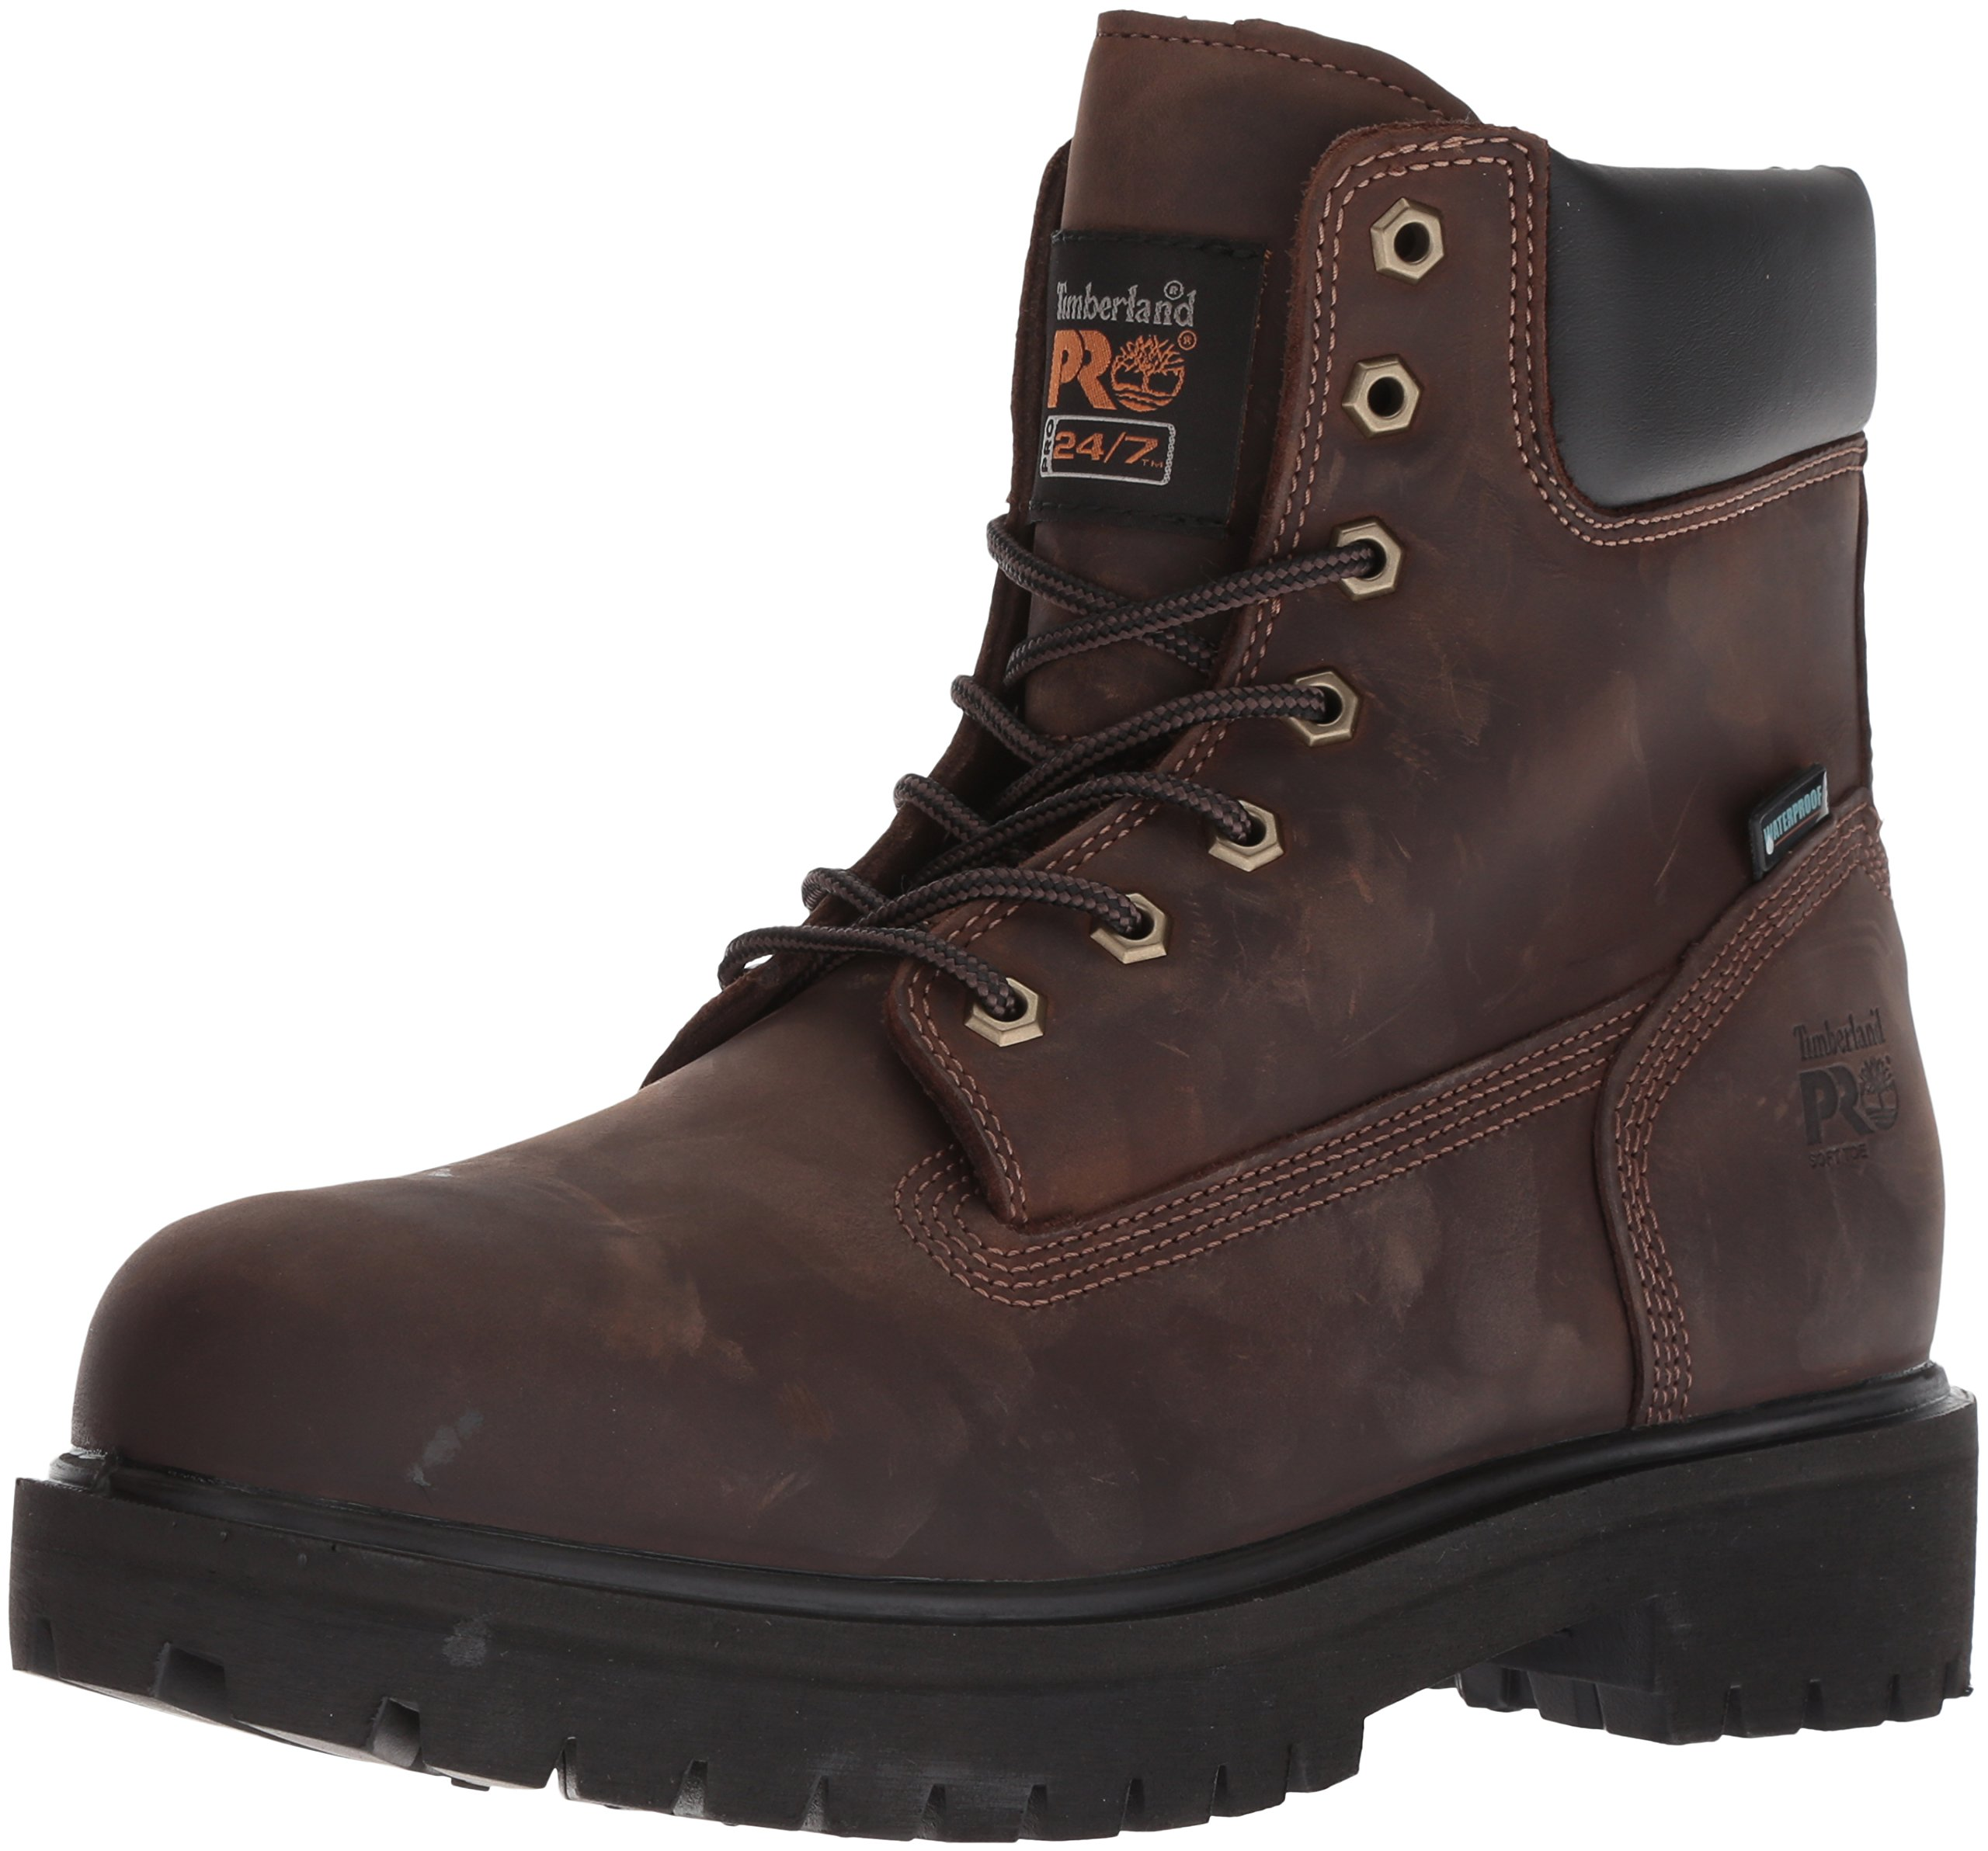 Timberland PRO Men's Direct Attach Six-Inch Soft-Toe Boot, Brown Oiled Full-Grain,12 W by Timberland PRO